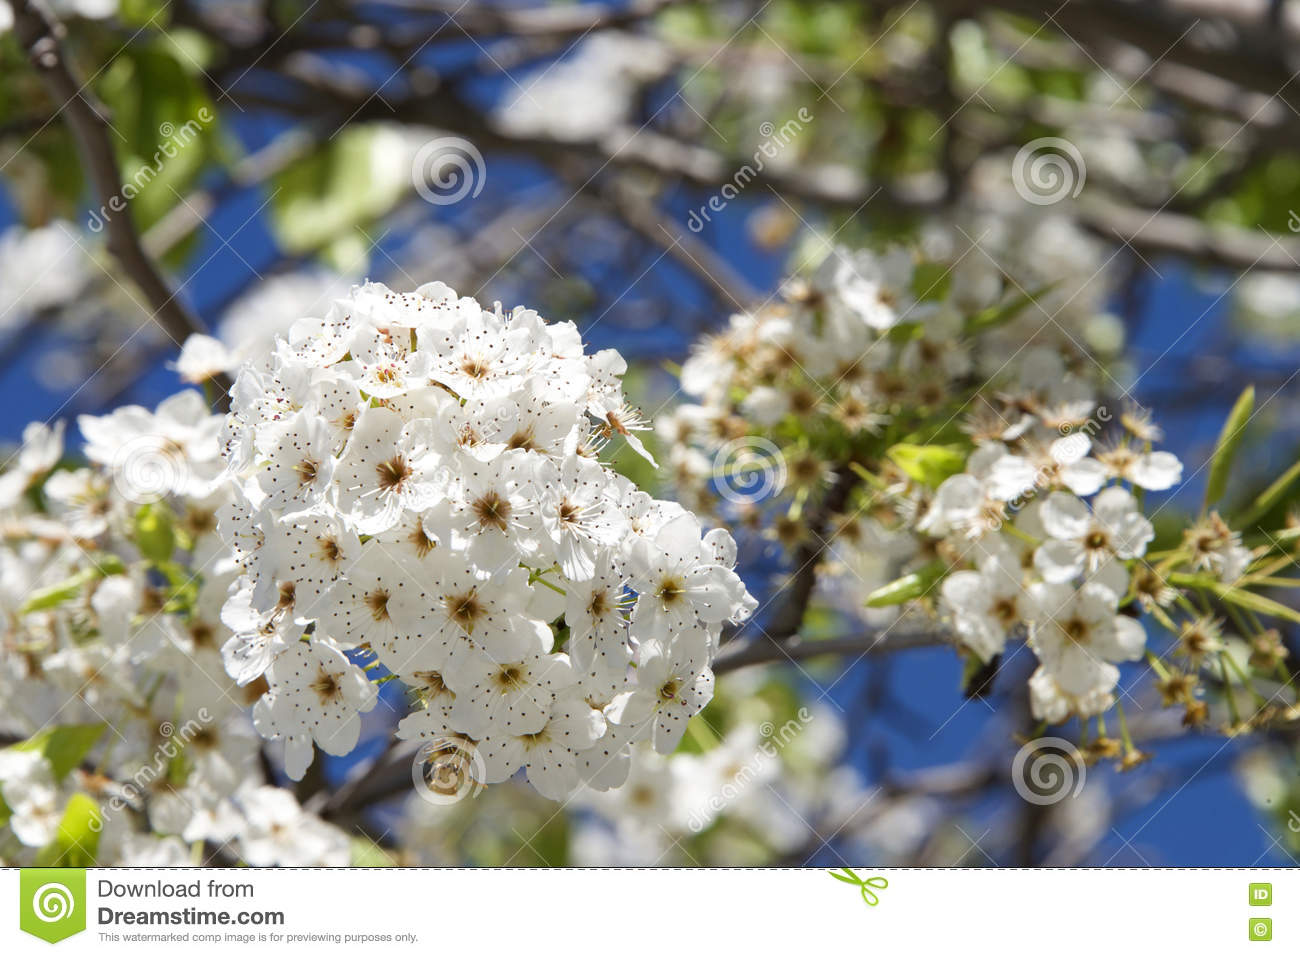 White cherry blossom tree flower clusters stock image image of white cherry blossom tree flower clusters mightylinksfo